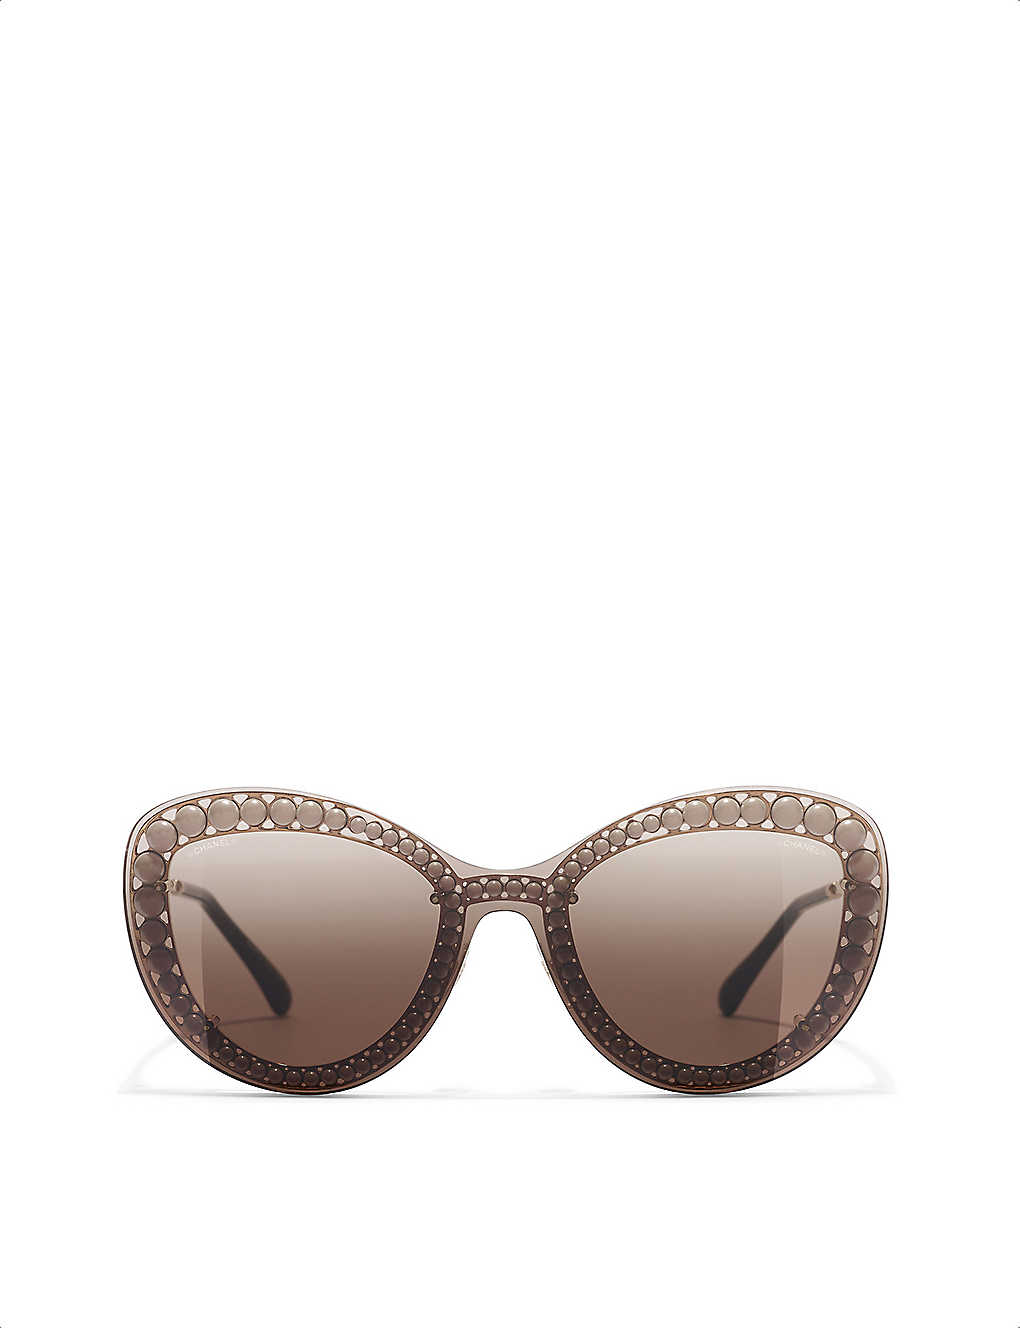 dbb3a9a487243 Butterfly sunglasses - Pale gold ...